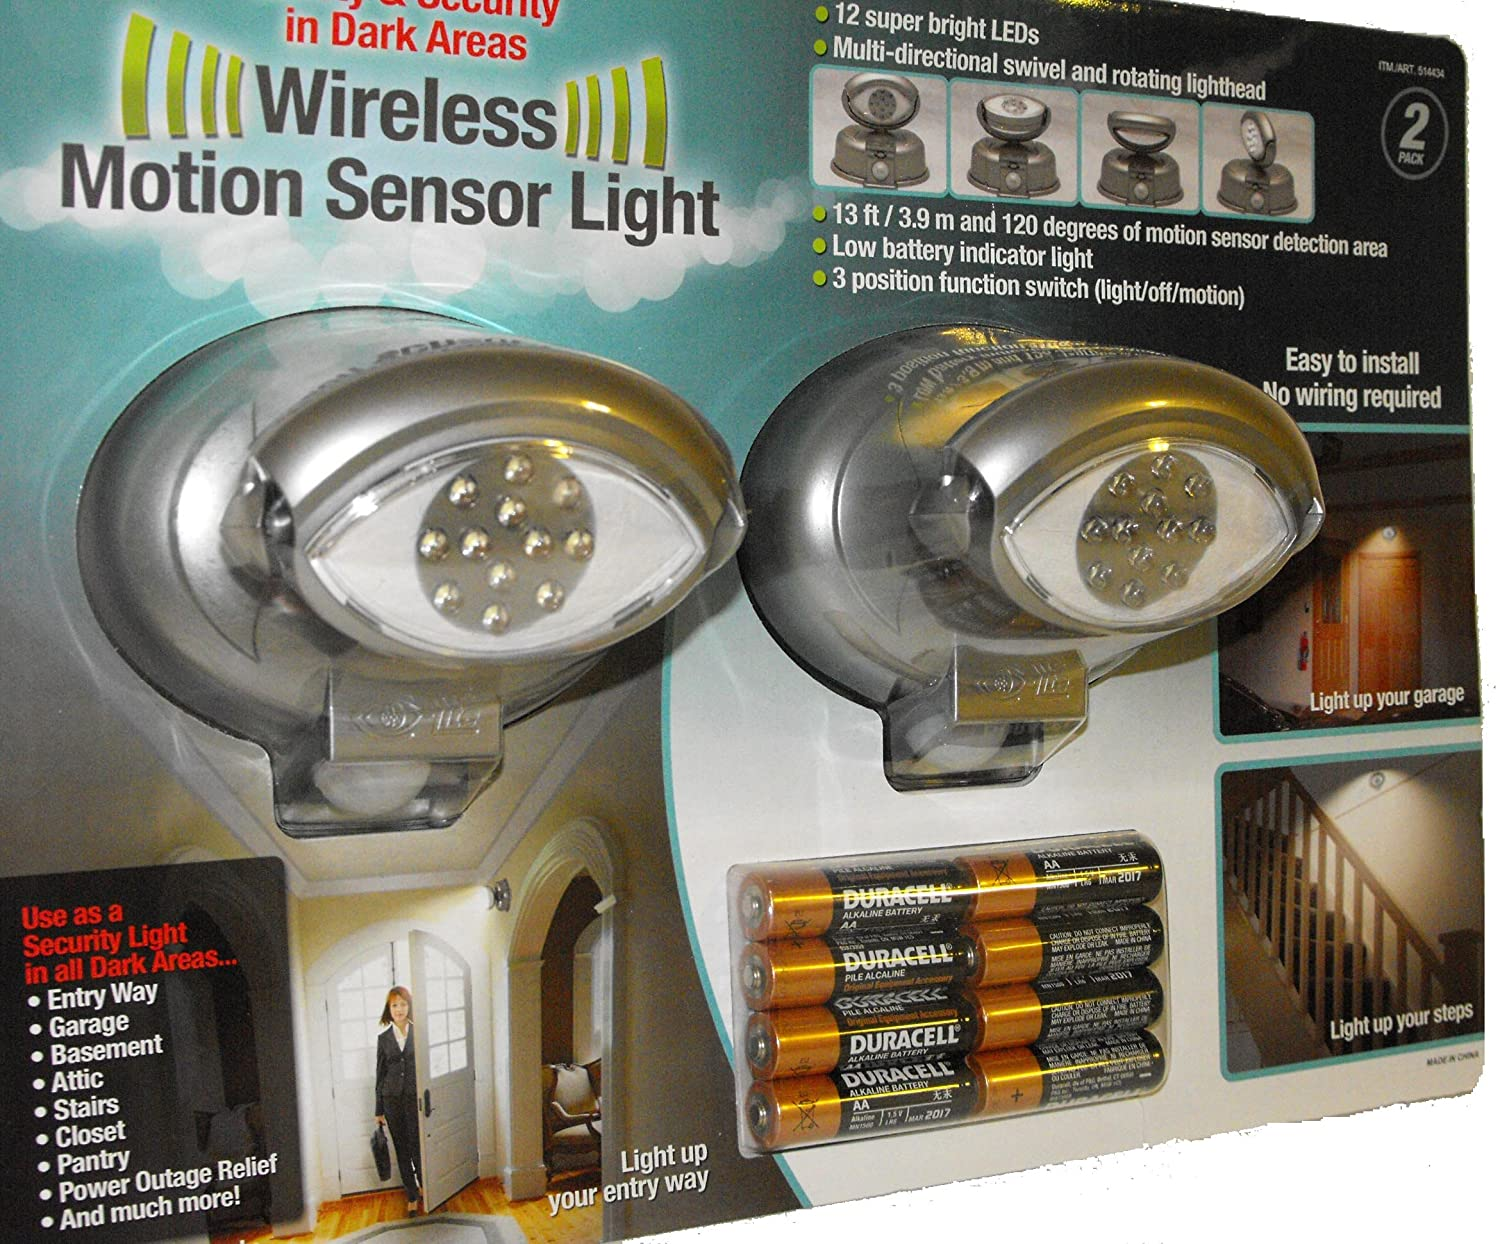 Megabrite 12 Led Wireless Motion Sensor Light 2 Pack 8 Duracell Wiring Lights Batteries Included 514434 Night